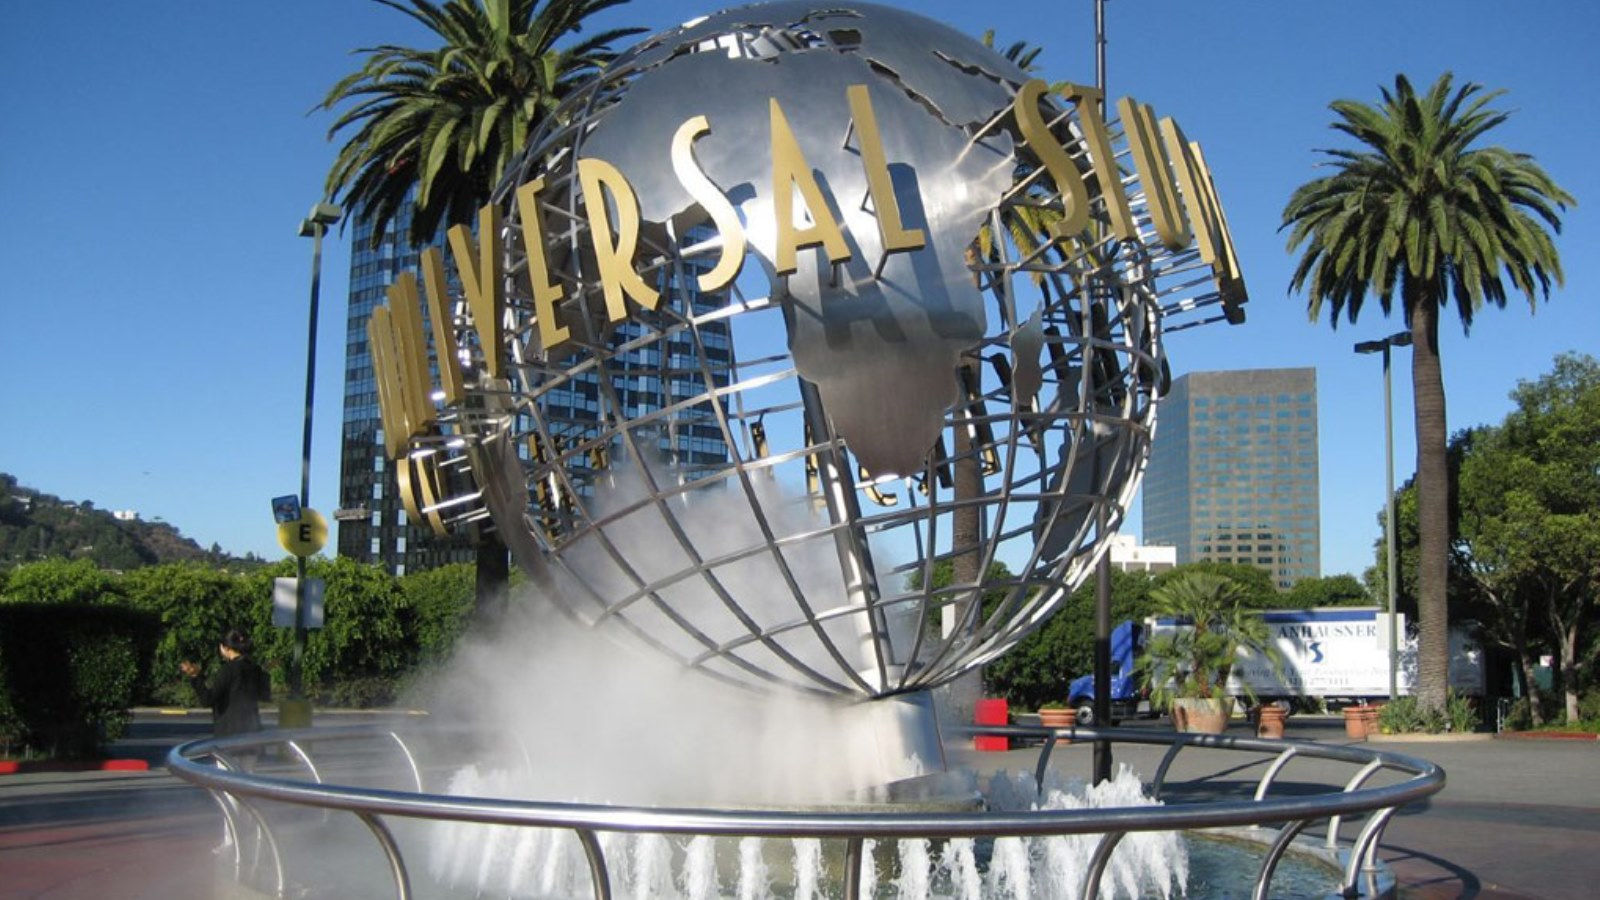 Things to do in Pasadena - Universal Studios